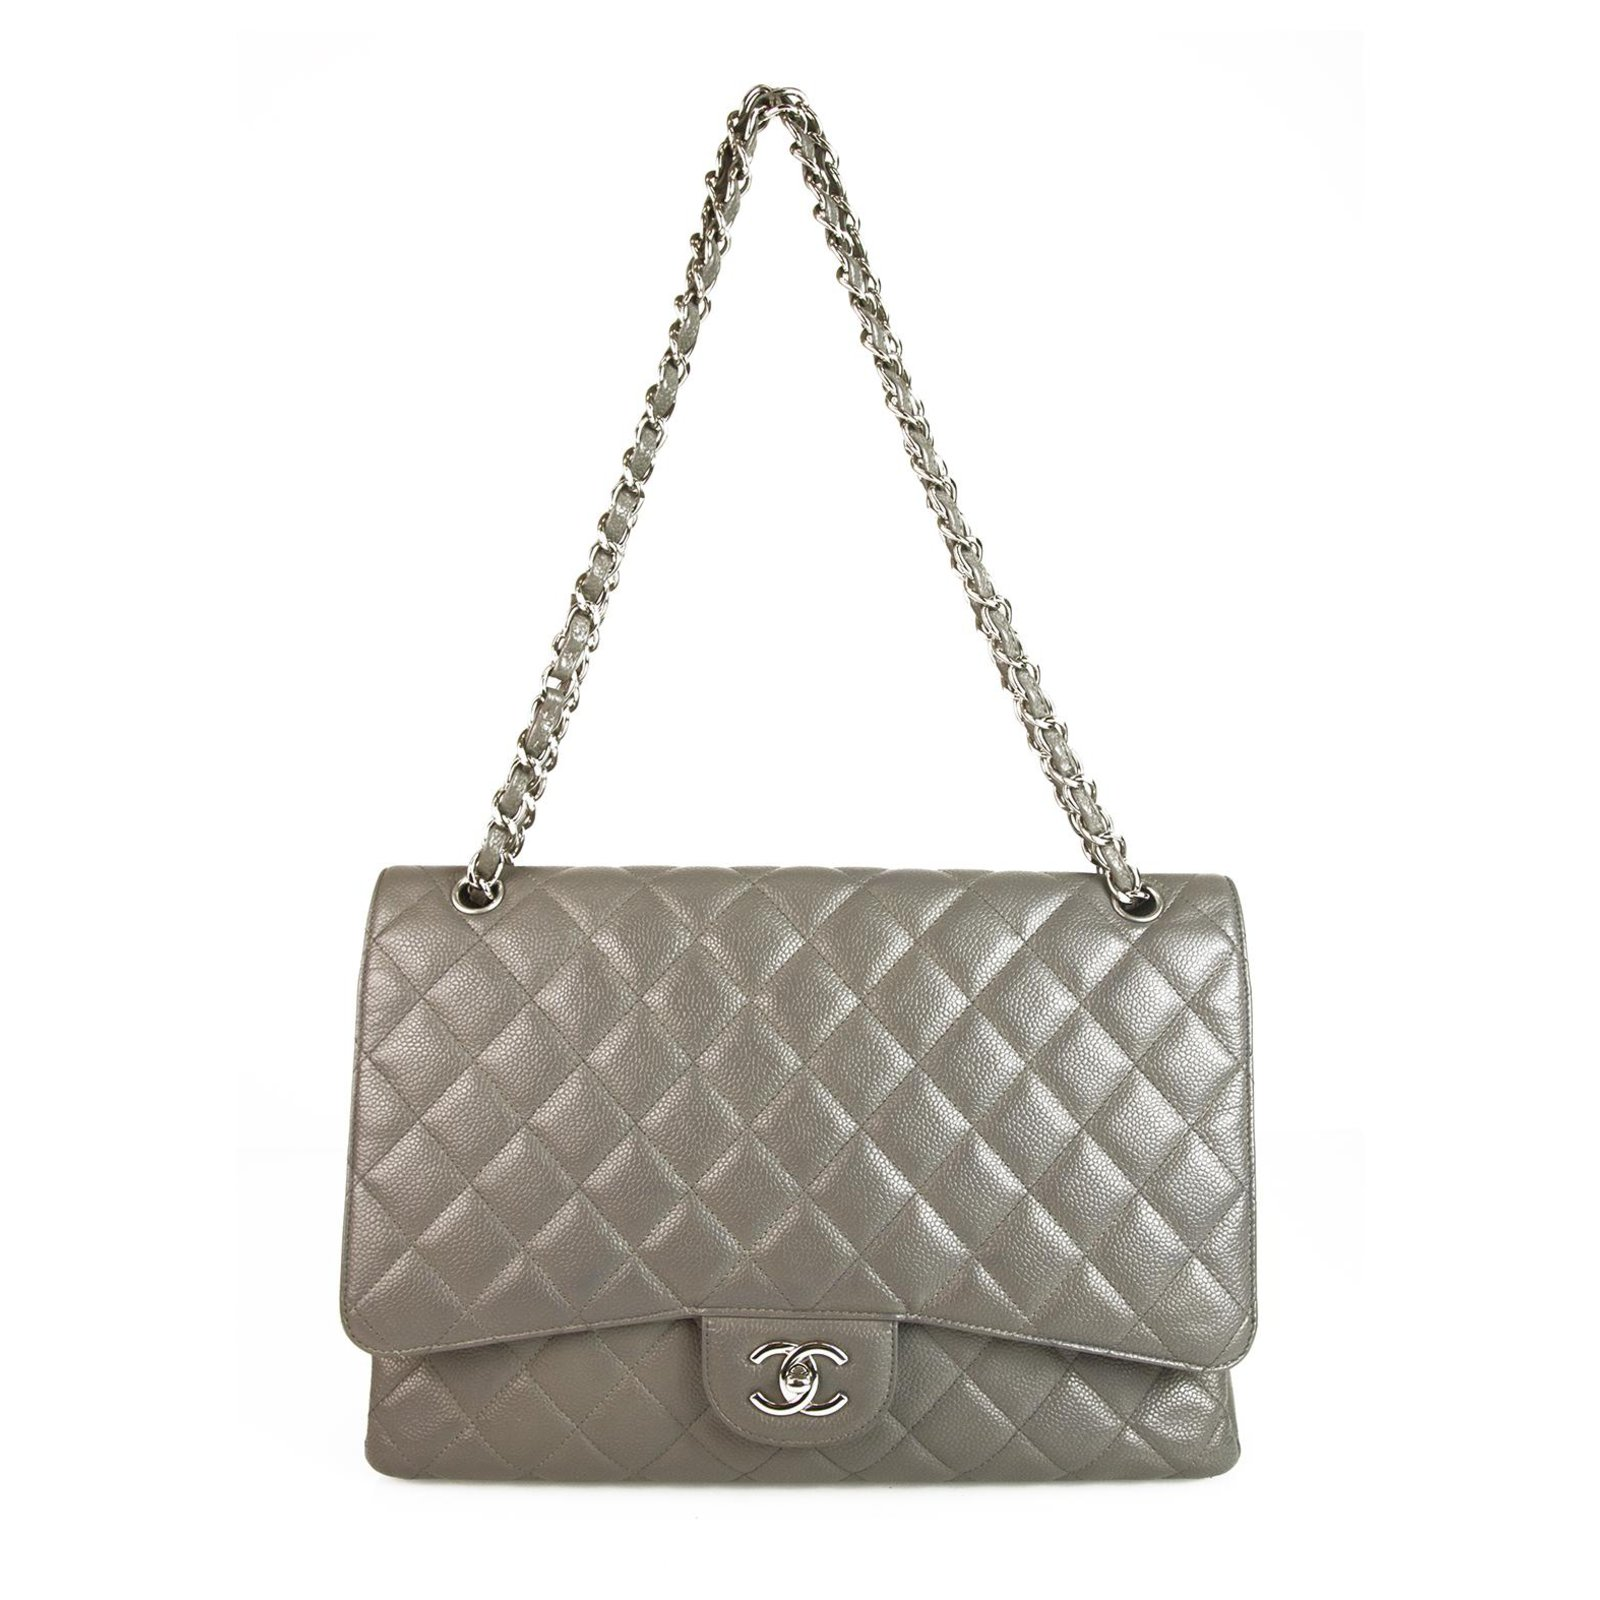 01067df7aaa8db Chanel CHANEL Grey Caviar Leather Maxi Classic Single Flap Bag Handbags  Leather Grey ref.123408